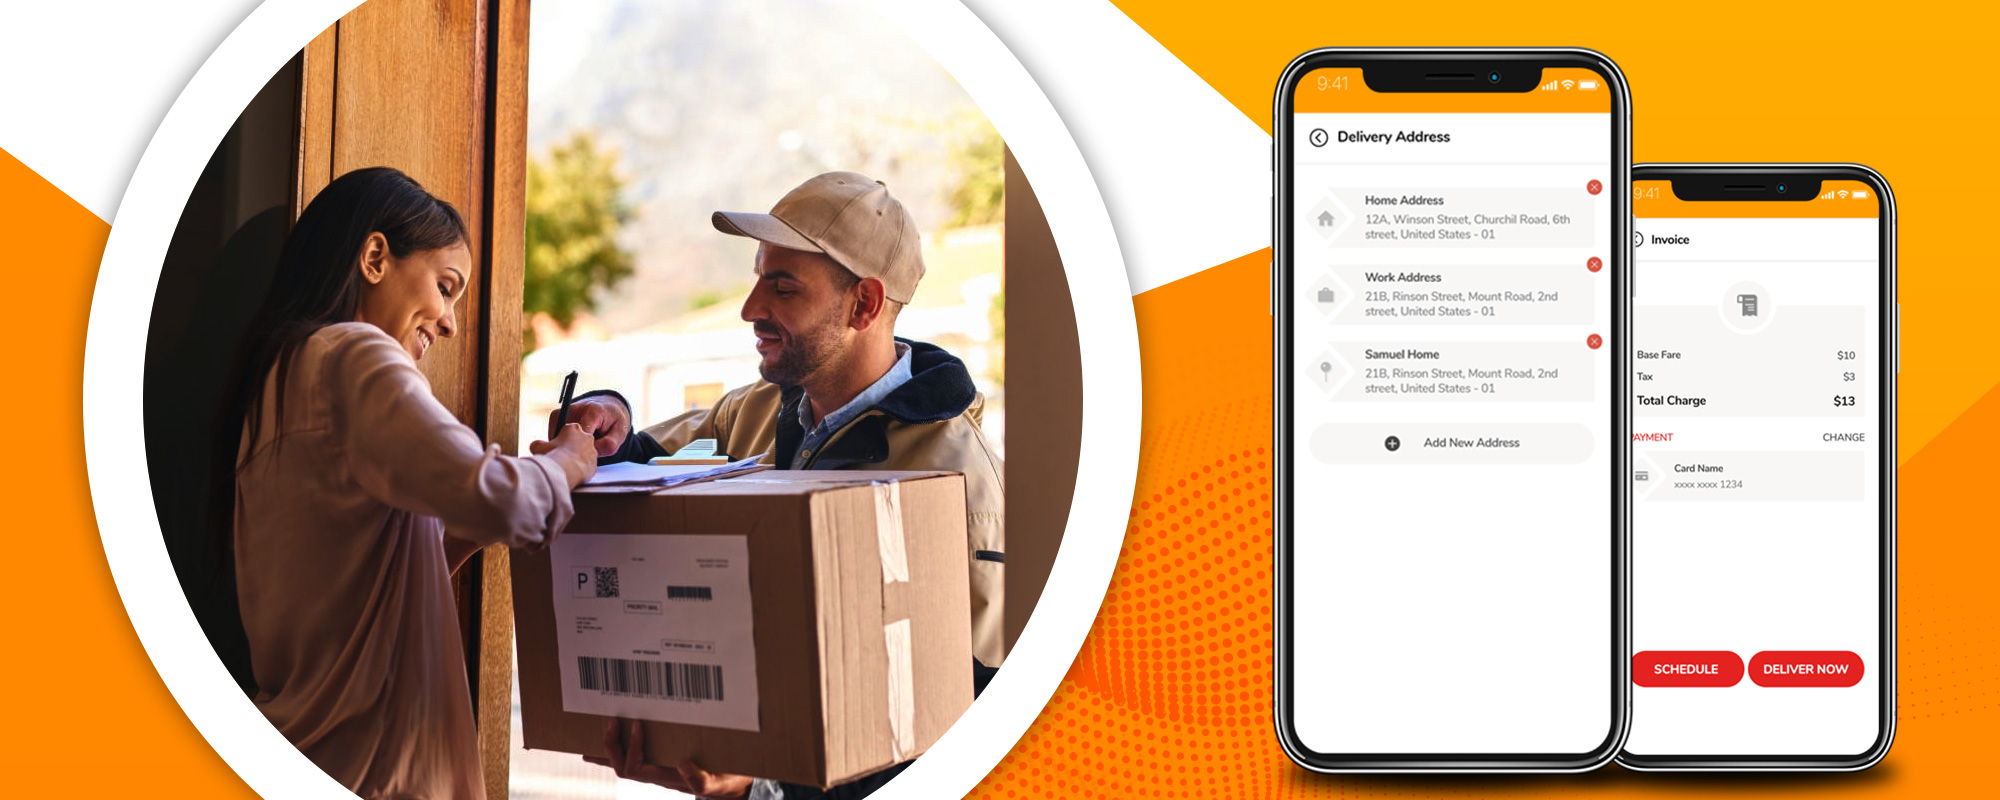 Extensive Guide for Launching and Operating an Uber for Courier App Business